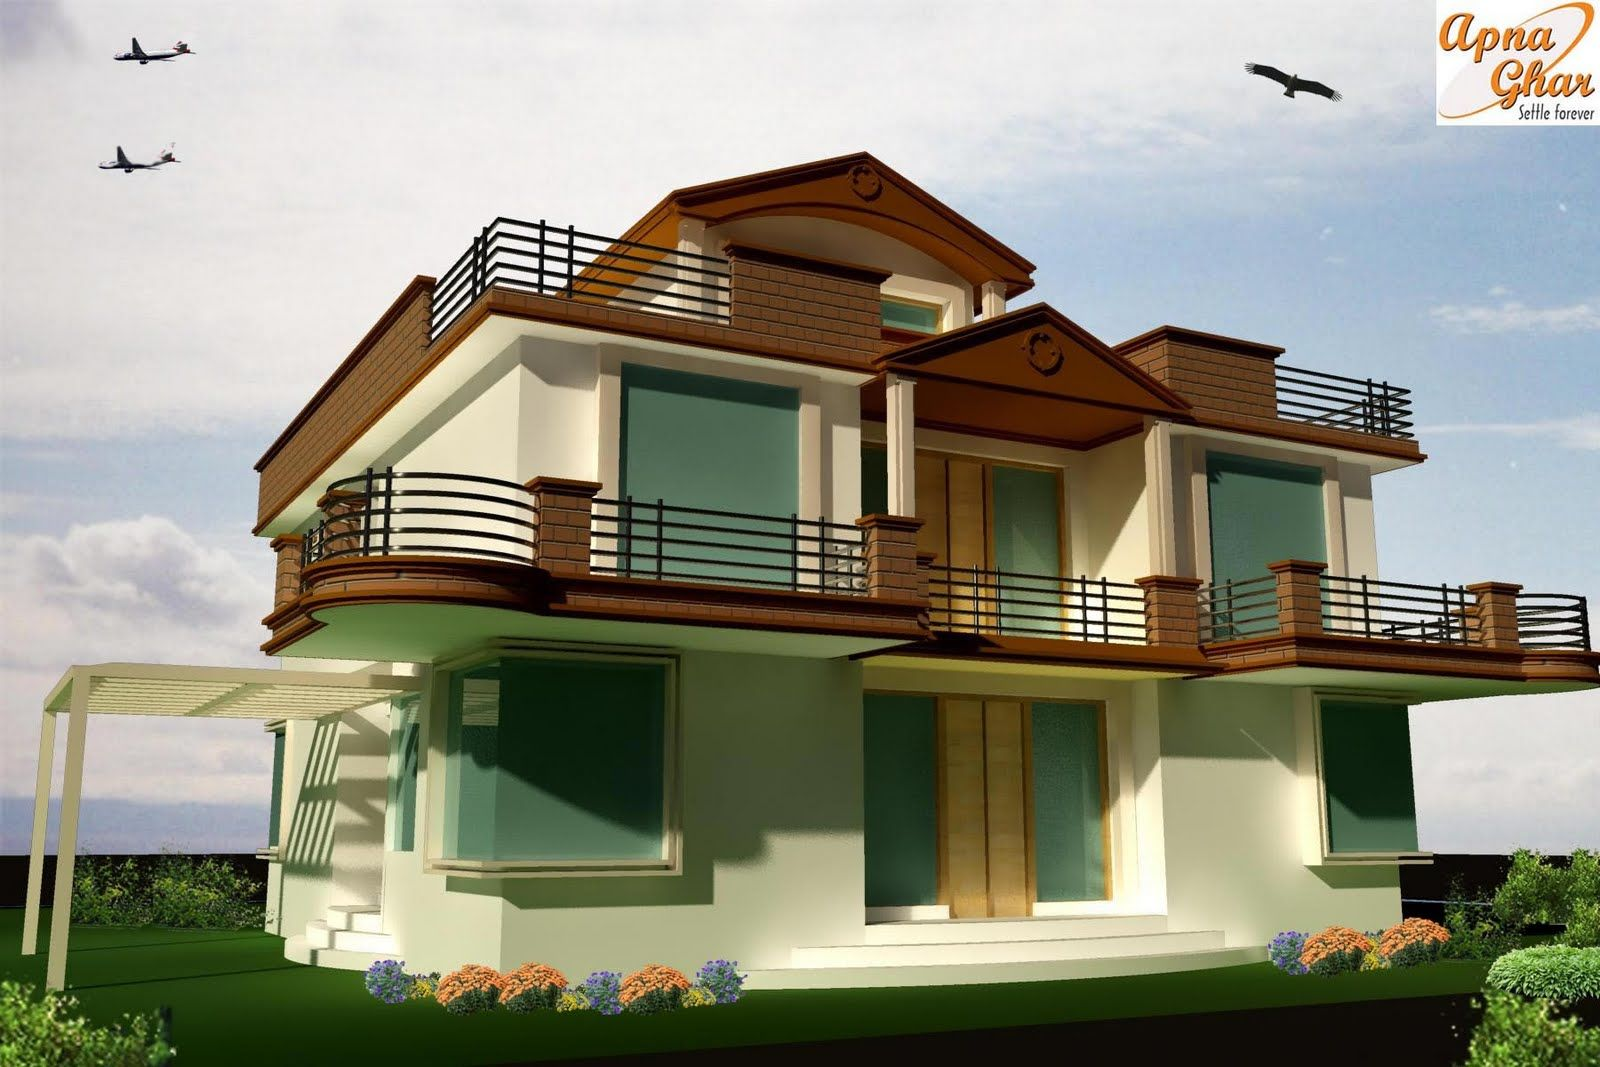 Architectural designs modern architectural house plans for Modern house plans with photos